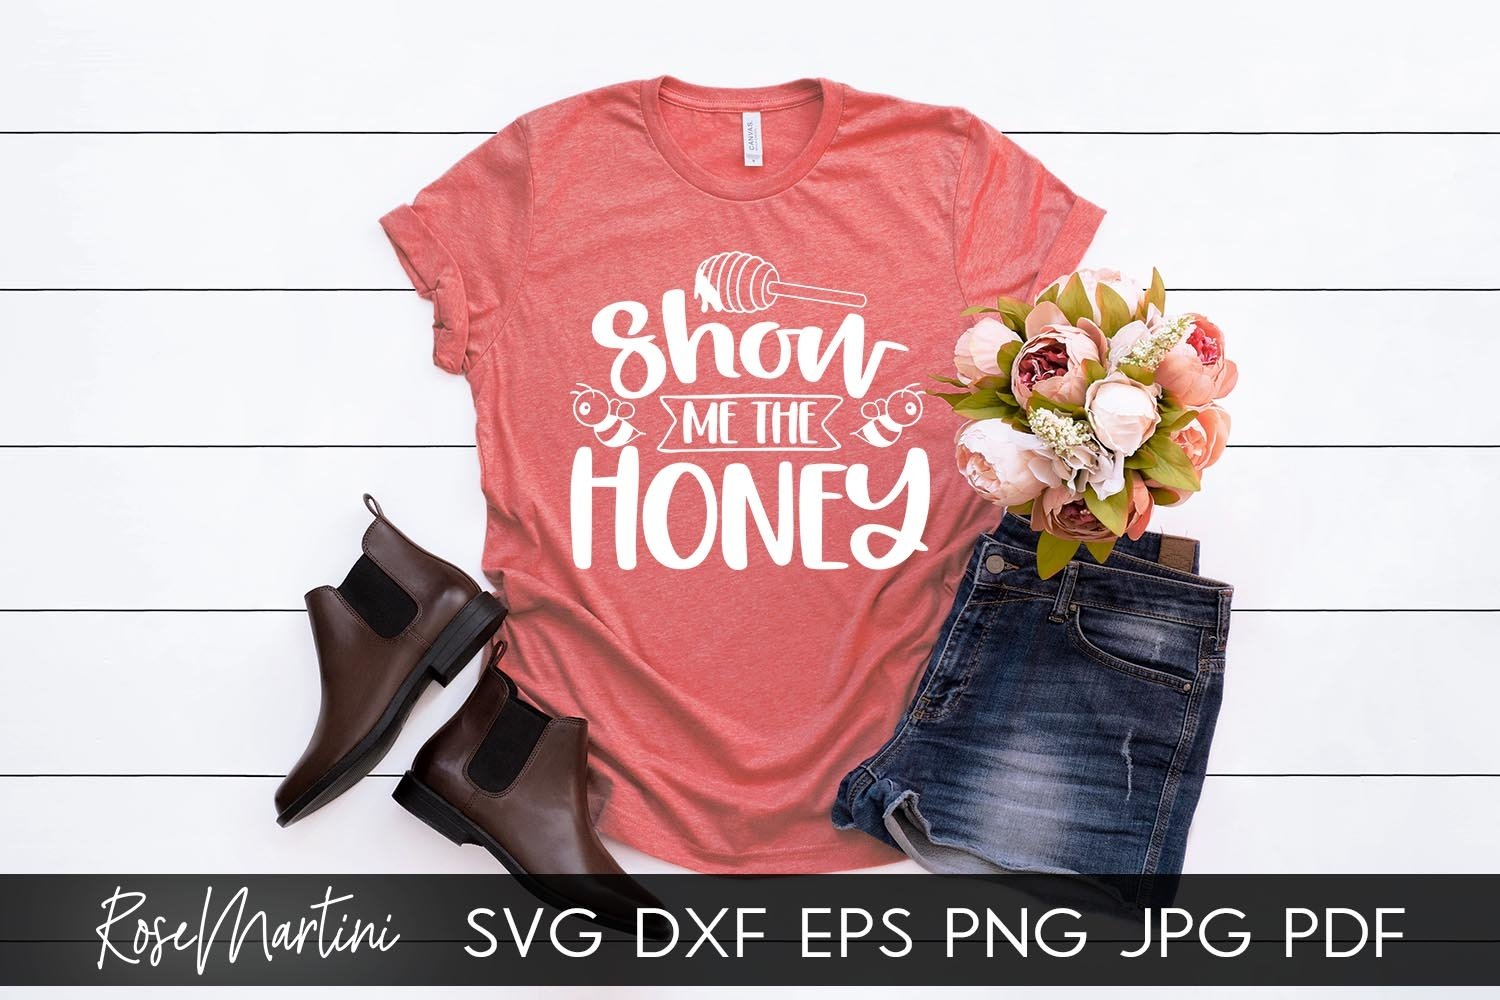 Show Me The Honey SVG Queen Bee SVG Bee Pun Bumble Bee SVG example image 6